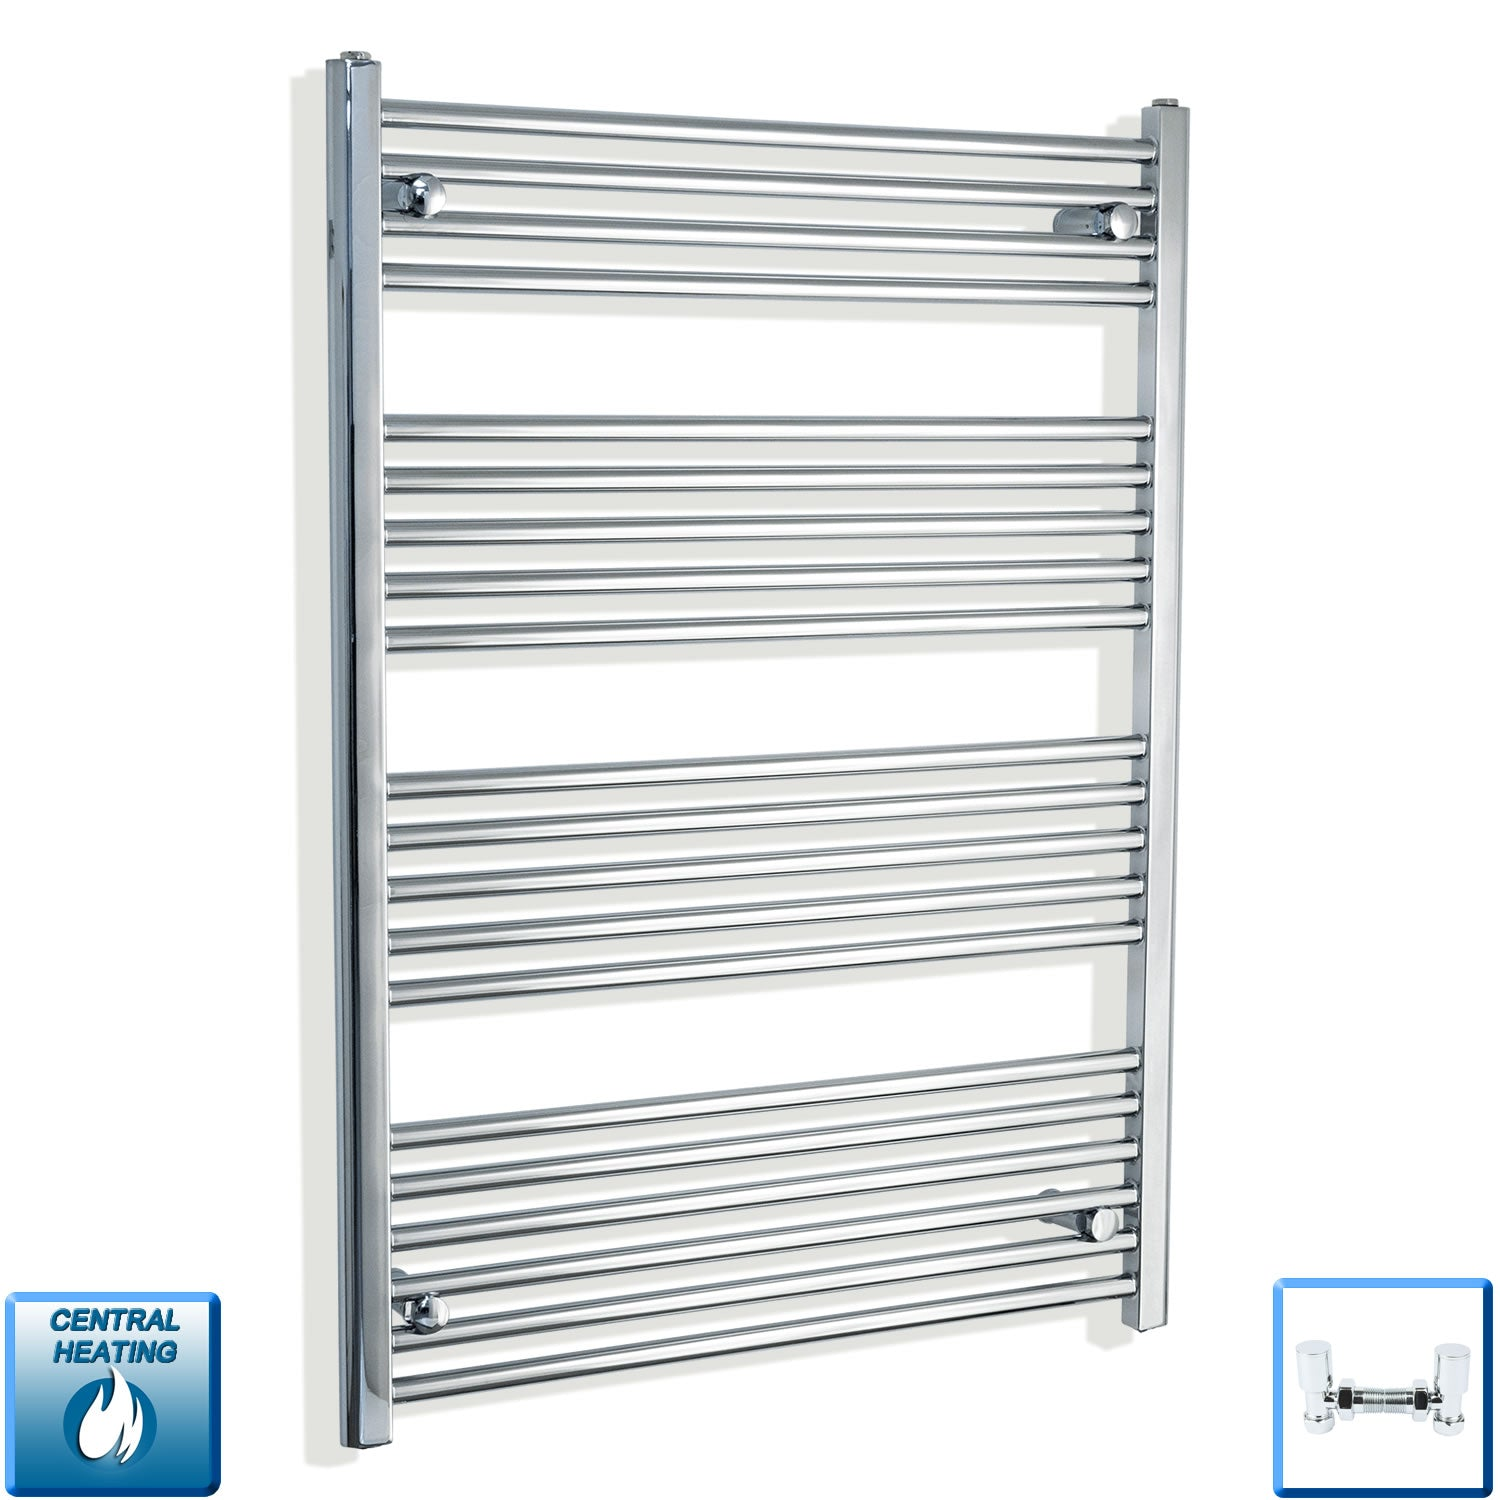 900mm Wide 1100mm High Chrome Towel Rail Radiator With Angled Valve